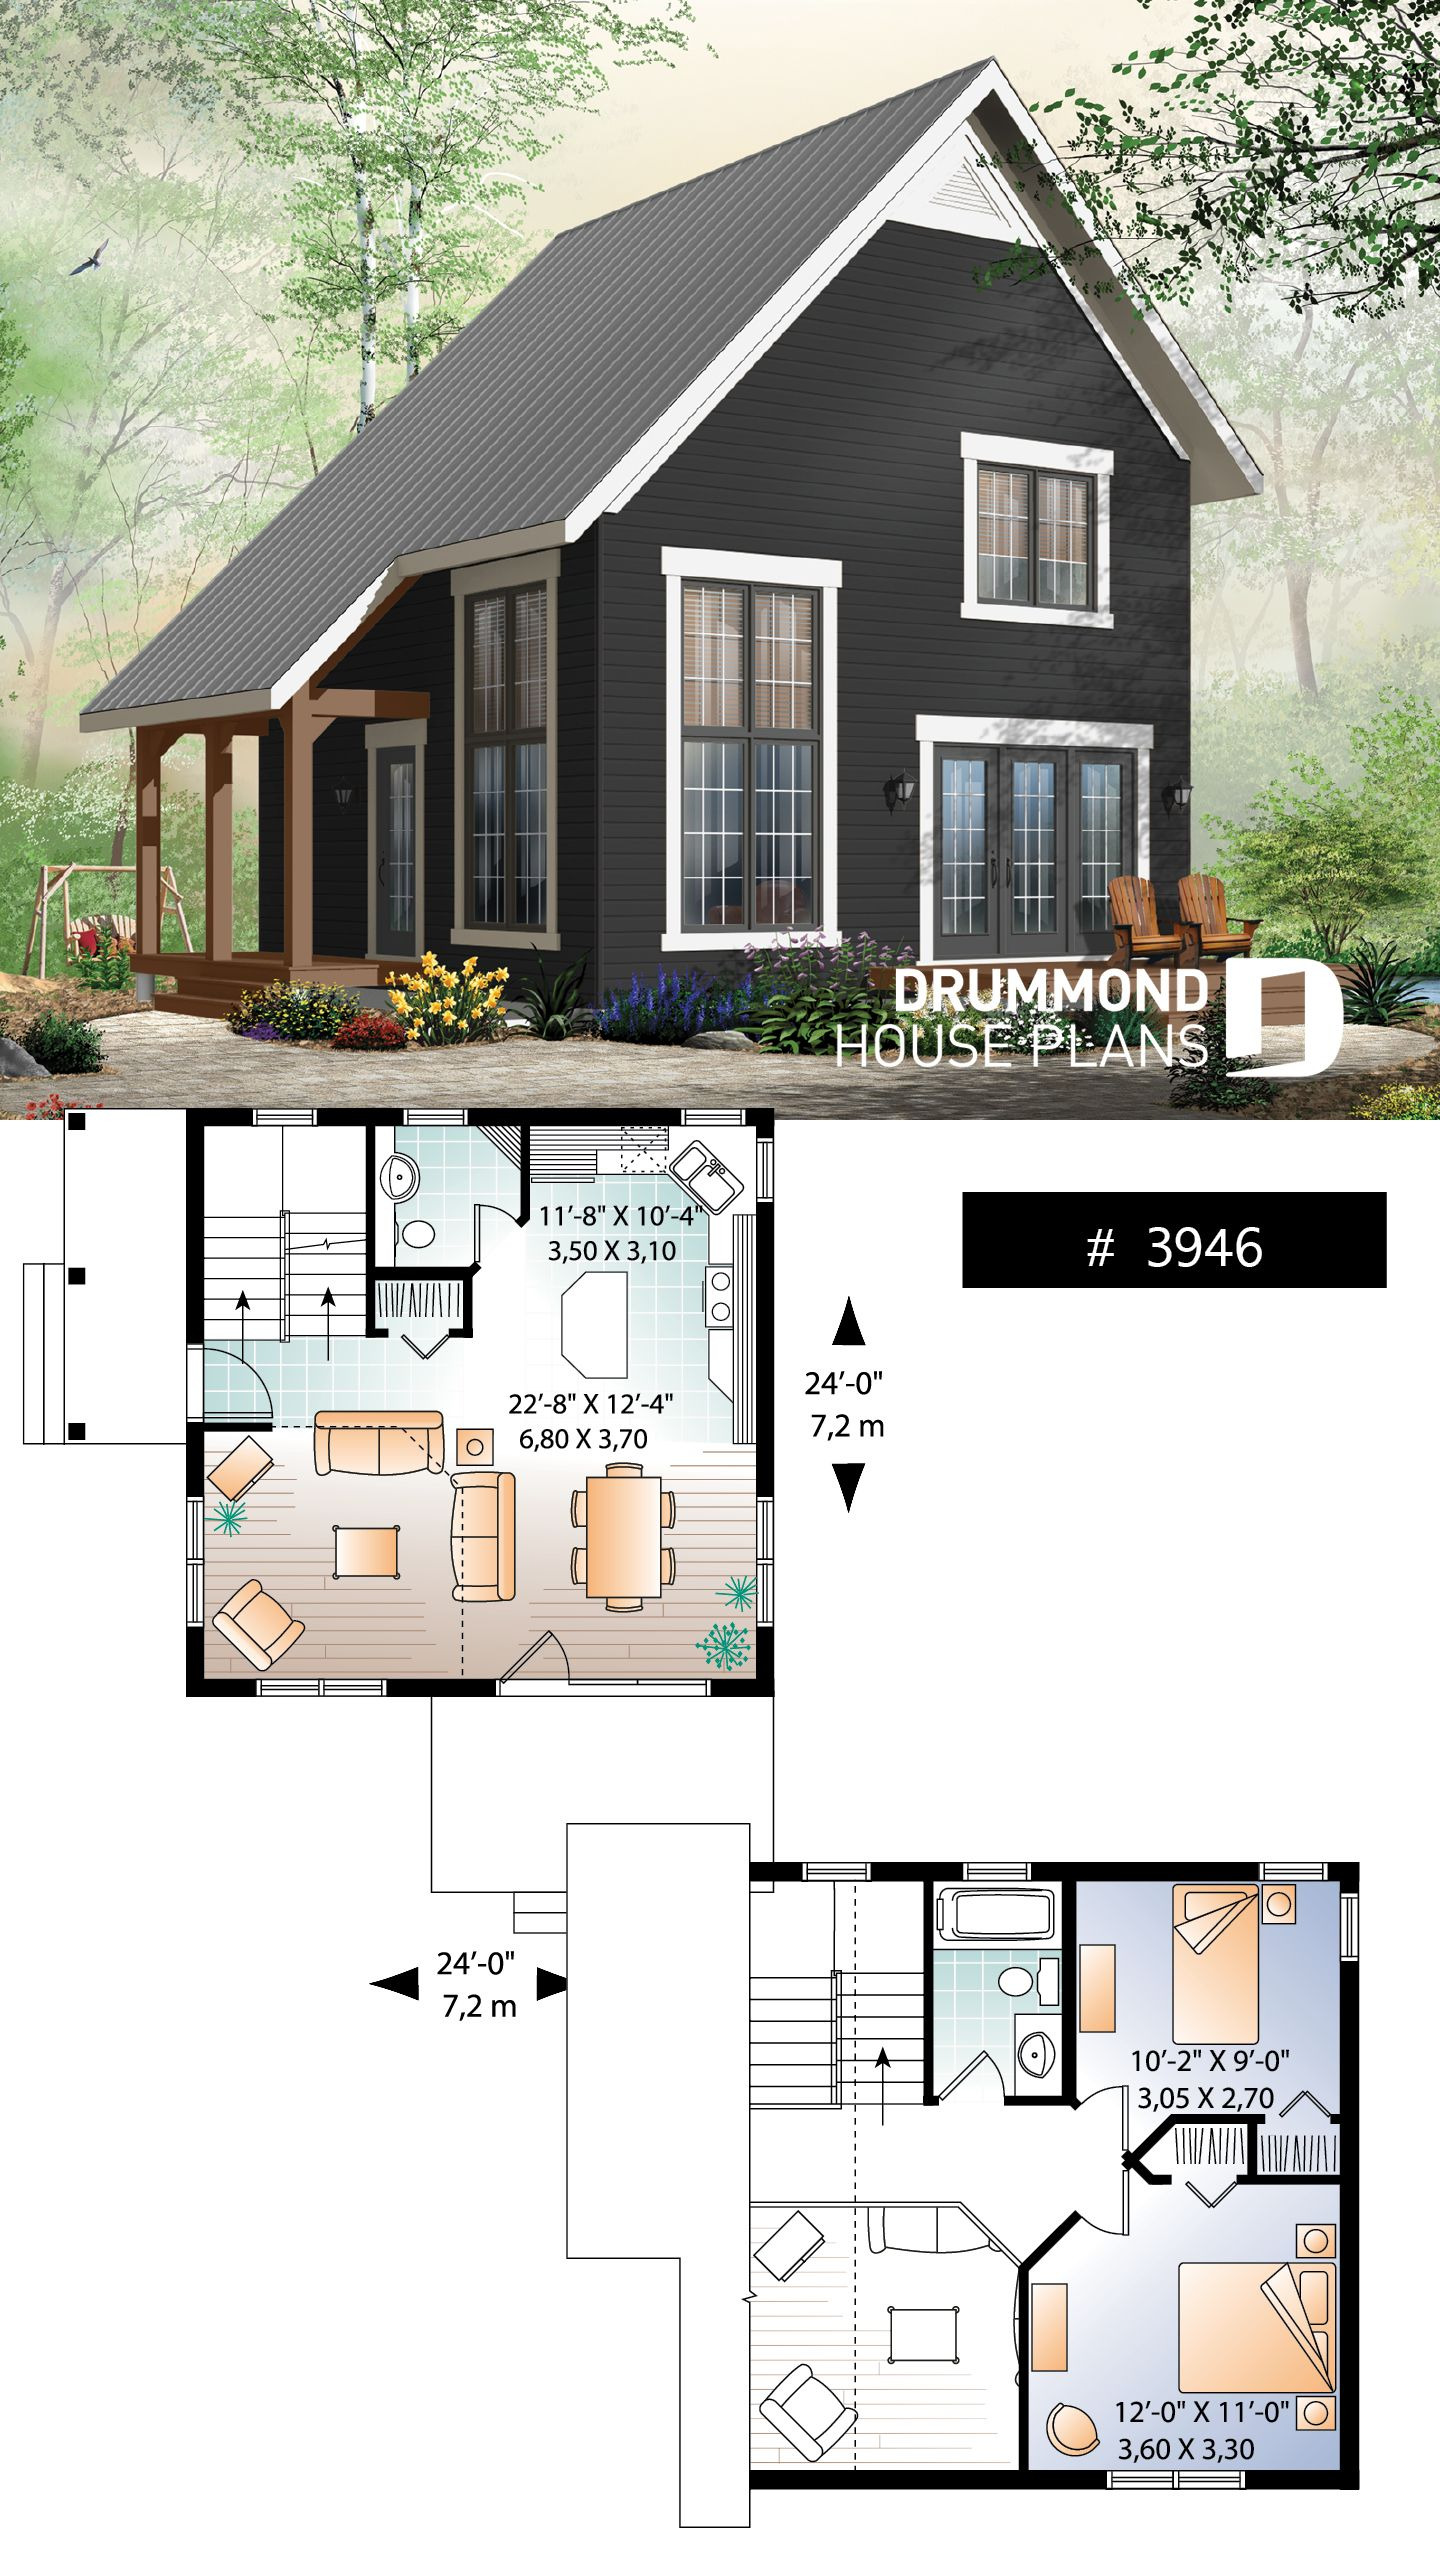 Really Small House Plans Fresh House Plan Willowgate No 3946 with Images